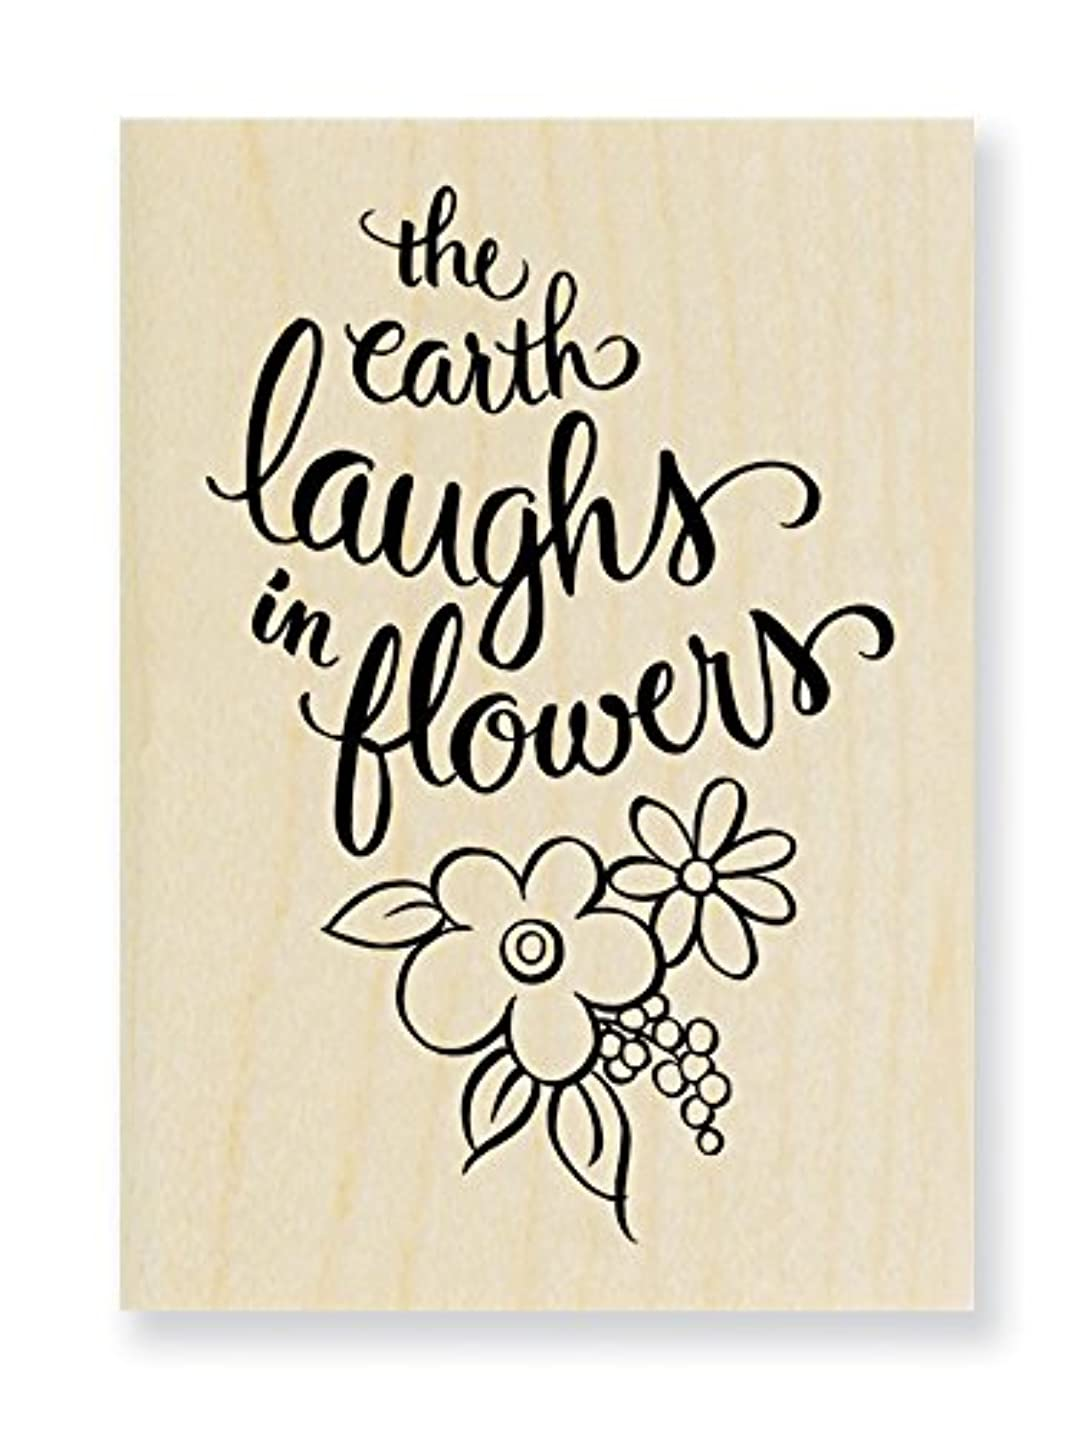 STAMPENDOUS Wood Rubber Stamp Earth Laughs jtqvxyhia